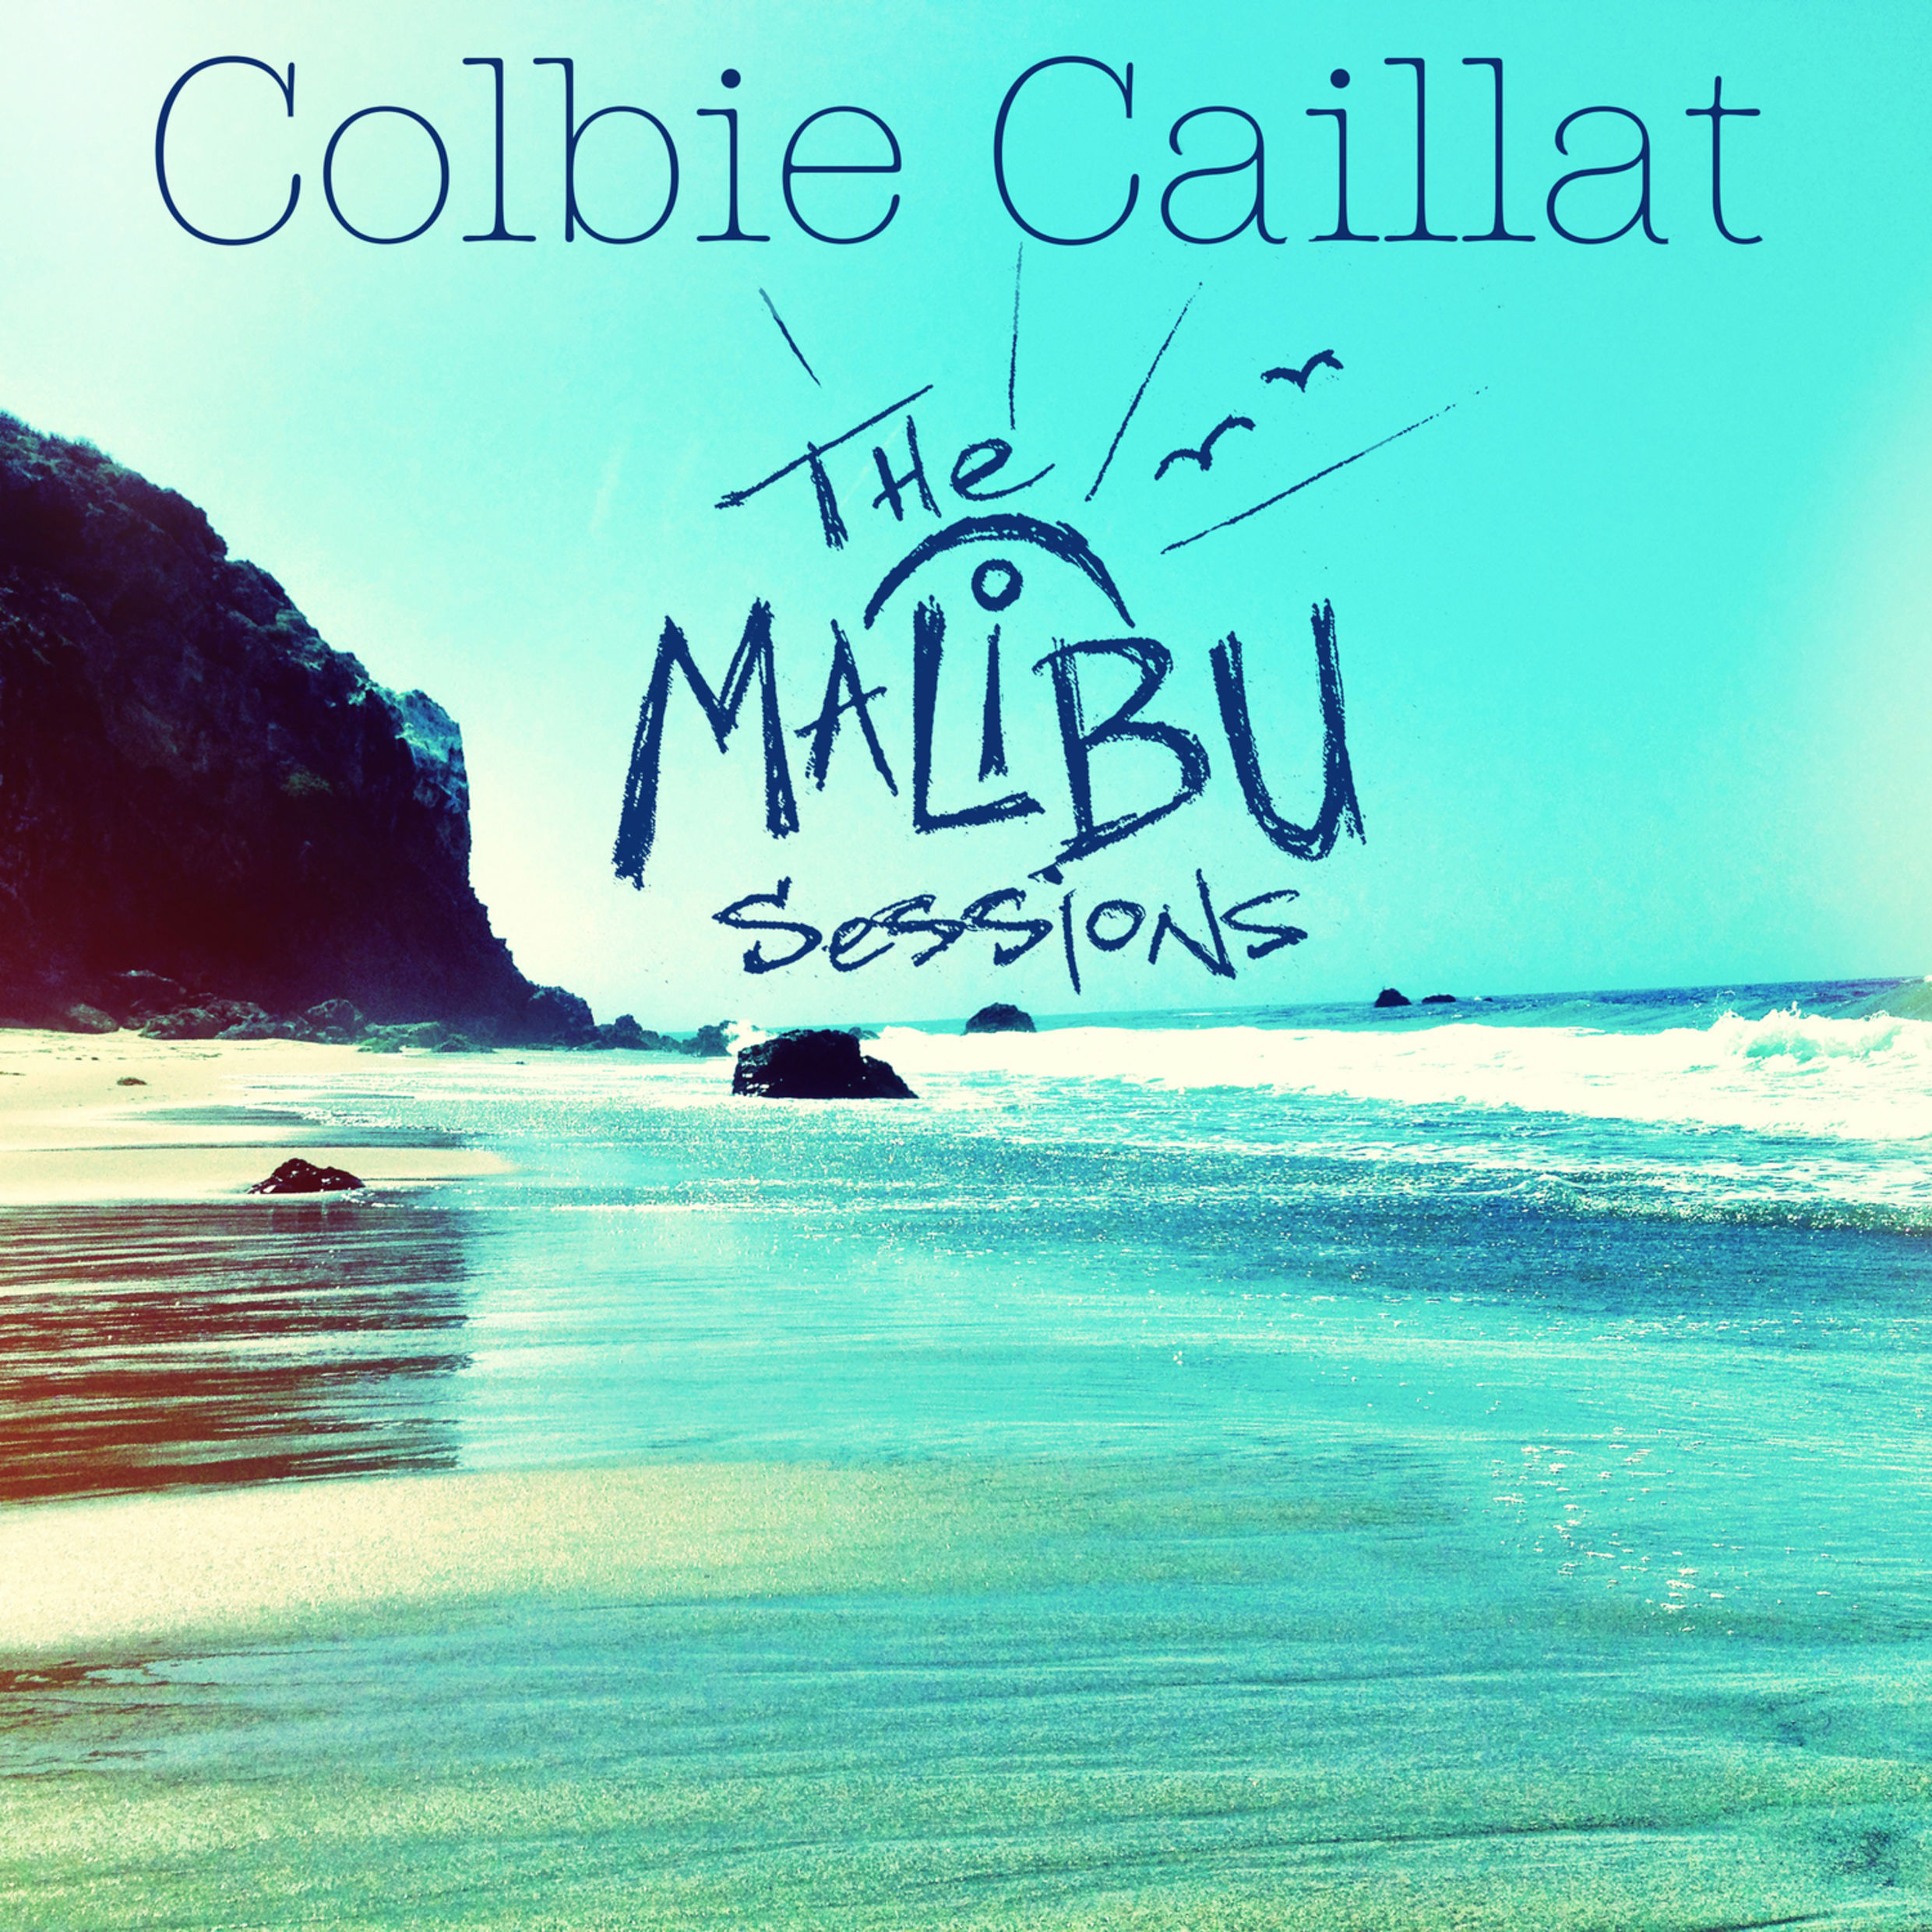 colbie-caillat-the-malibu-sessions